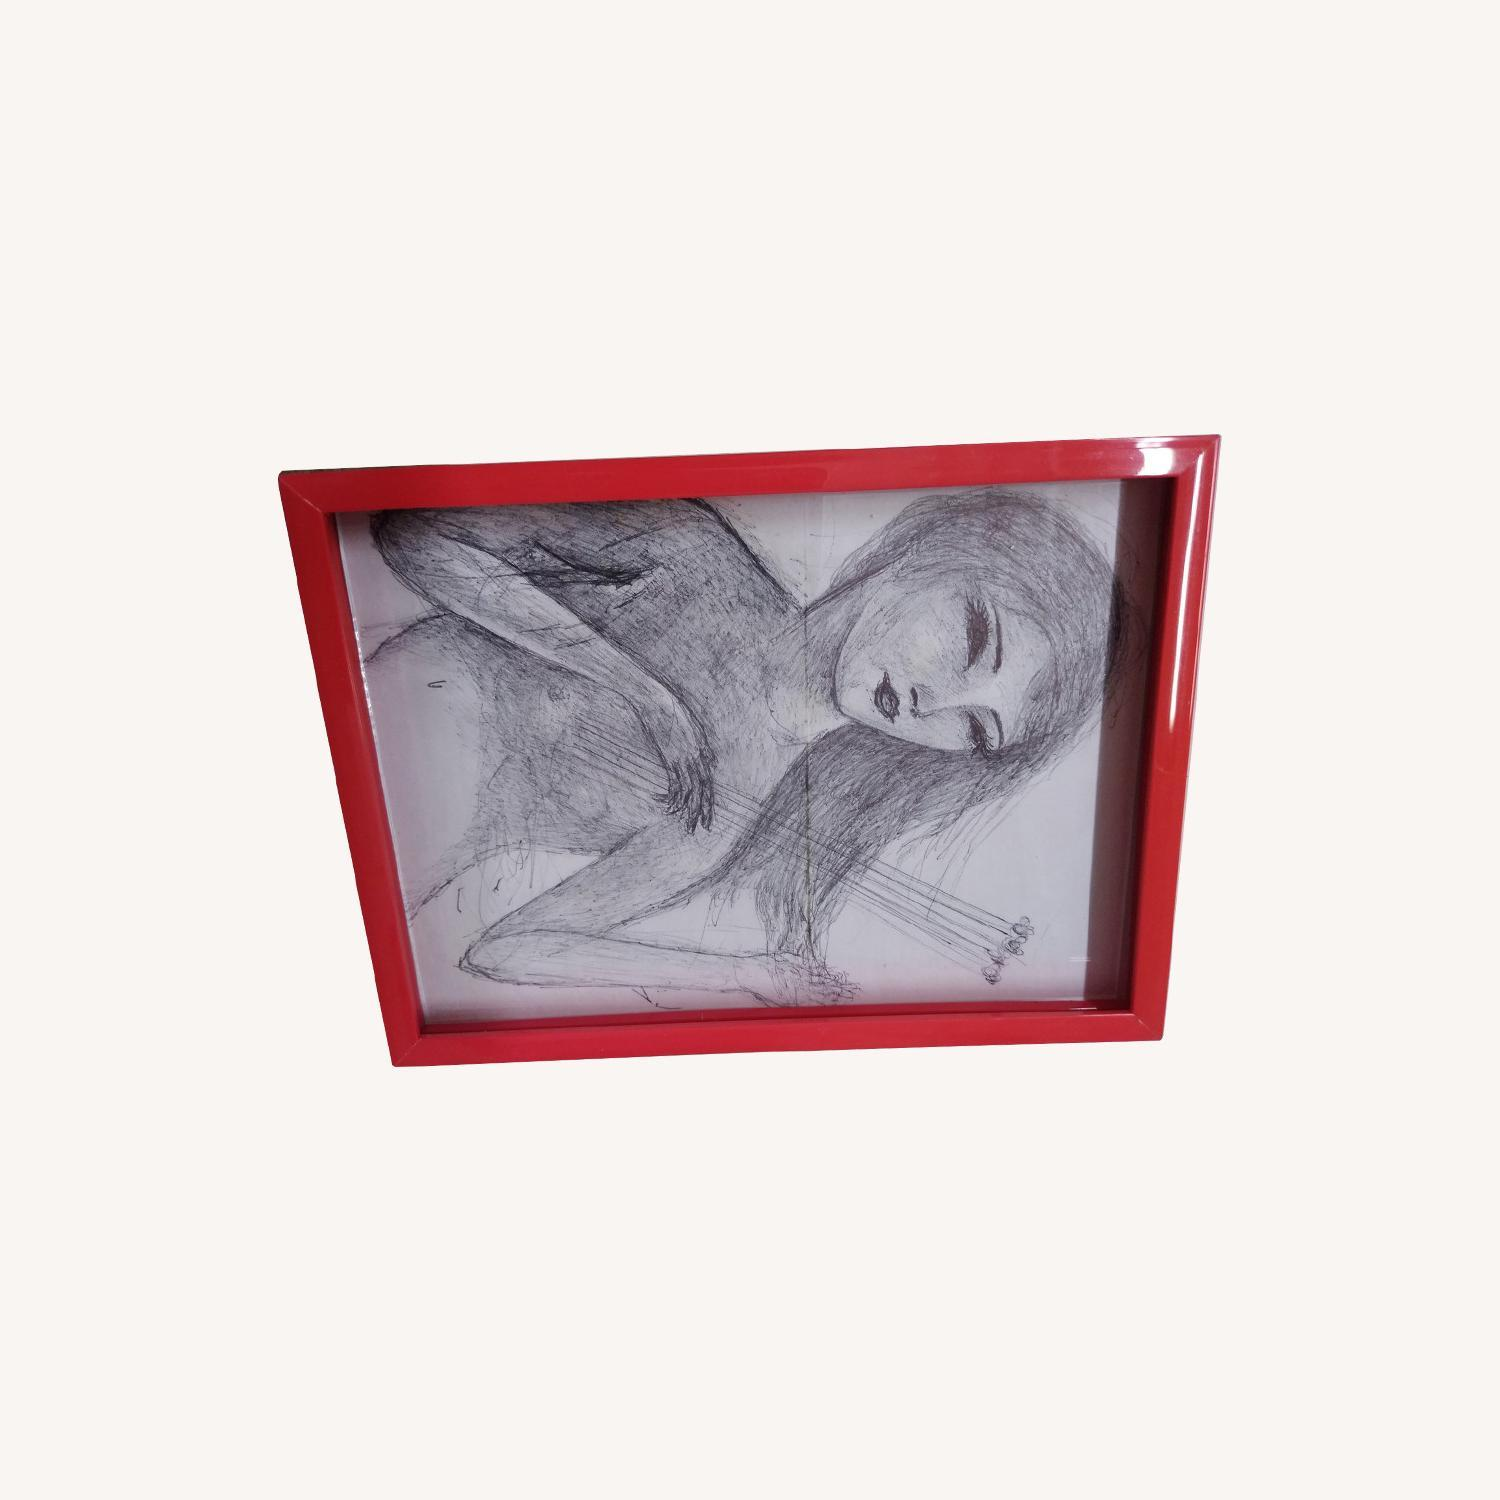 Drawing- Girl playing with bees in hot red frame - image-5